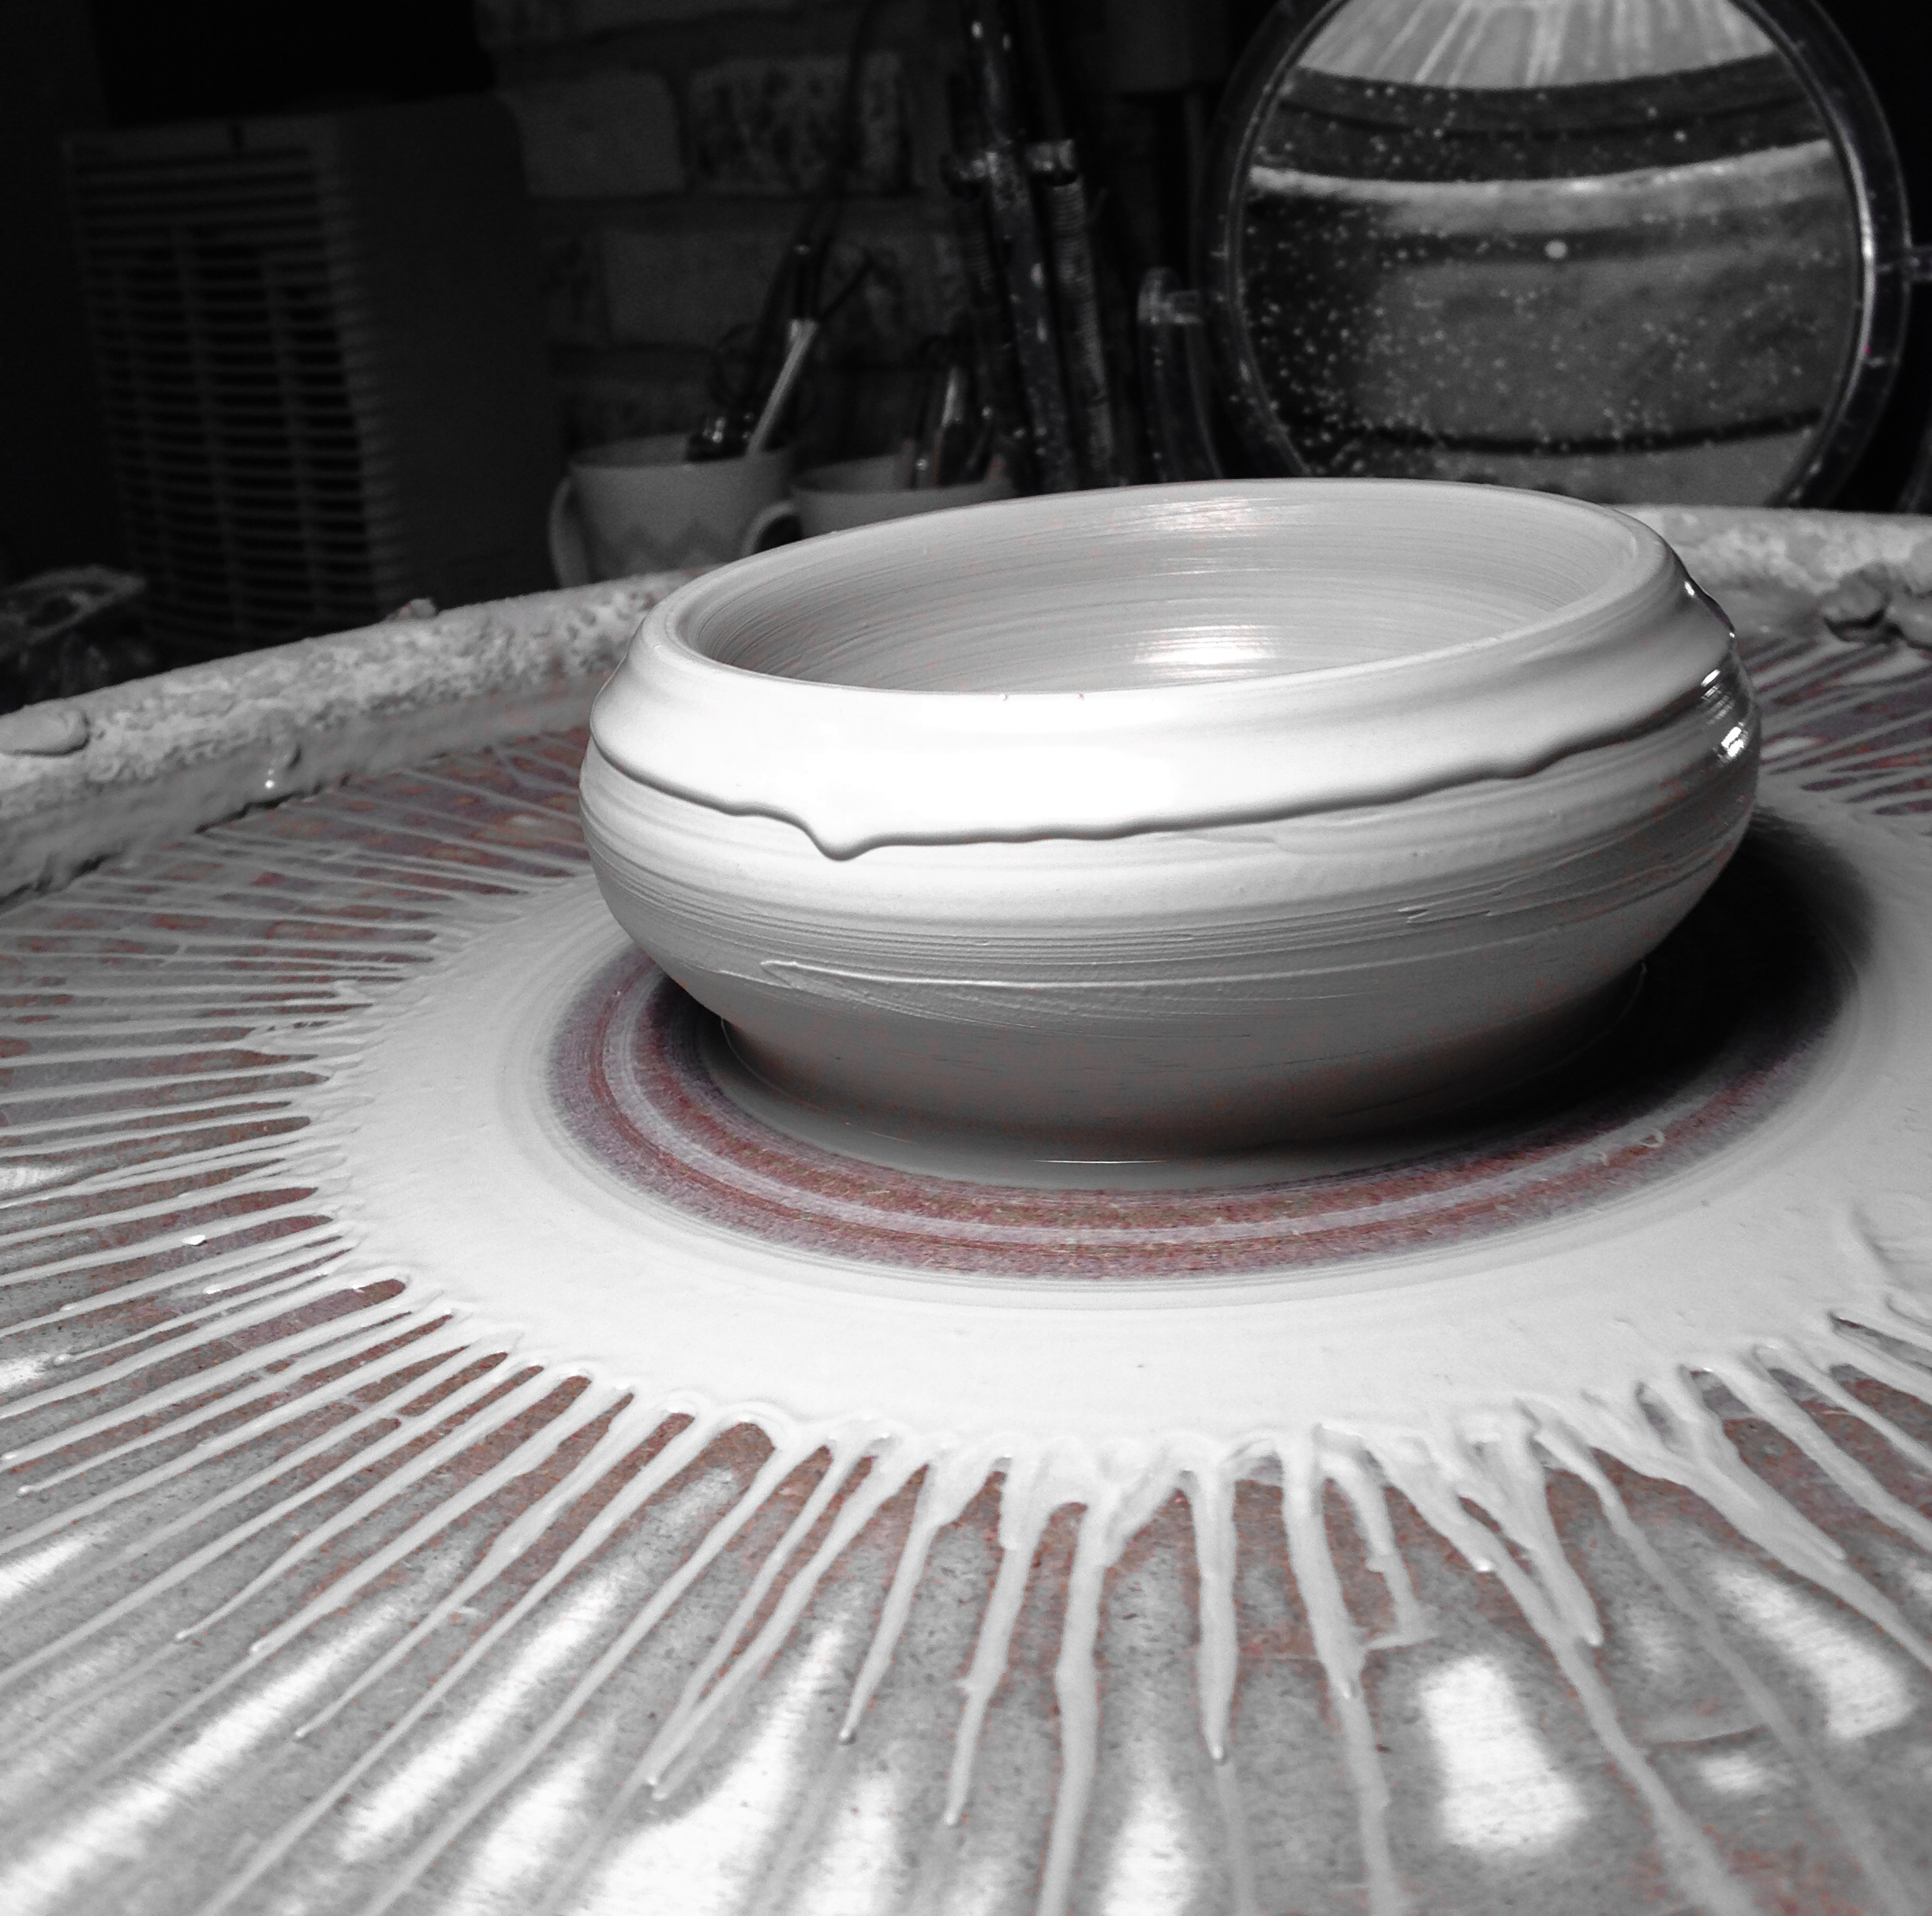 Making a porcelain bowl